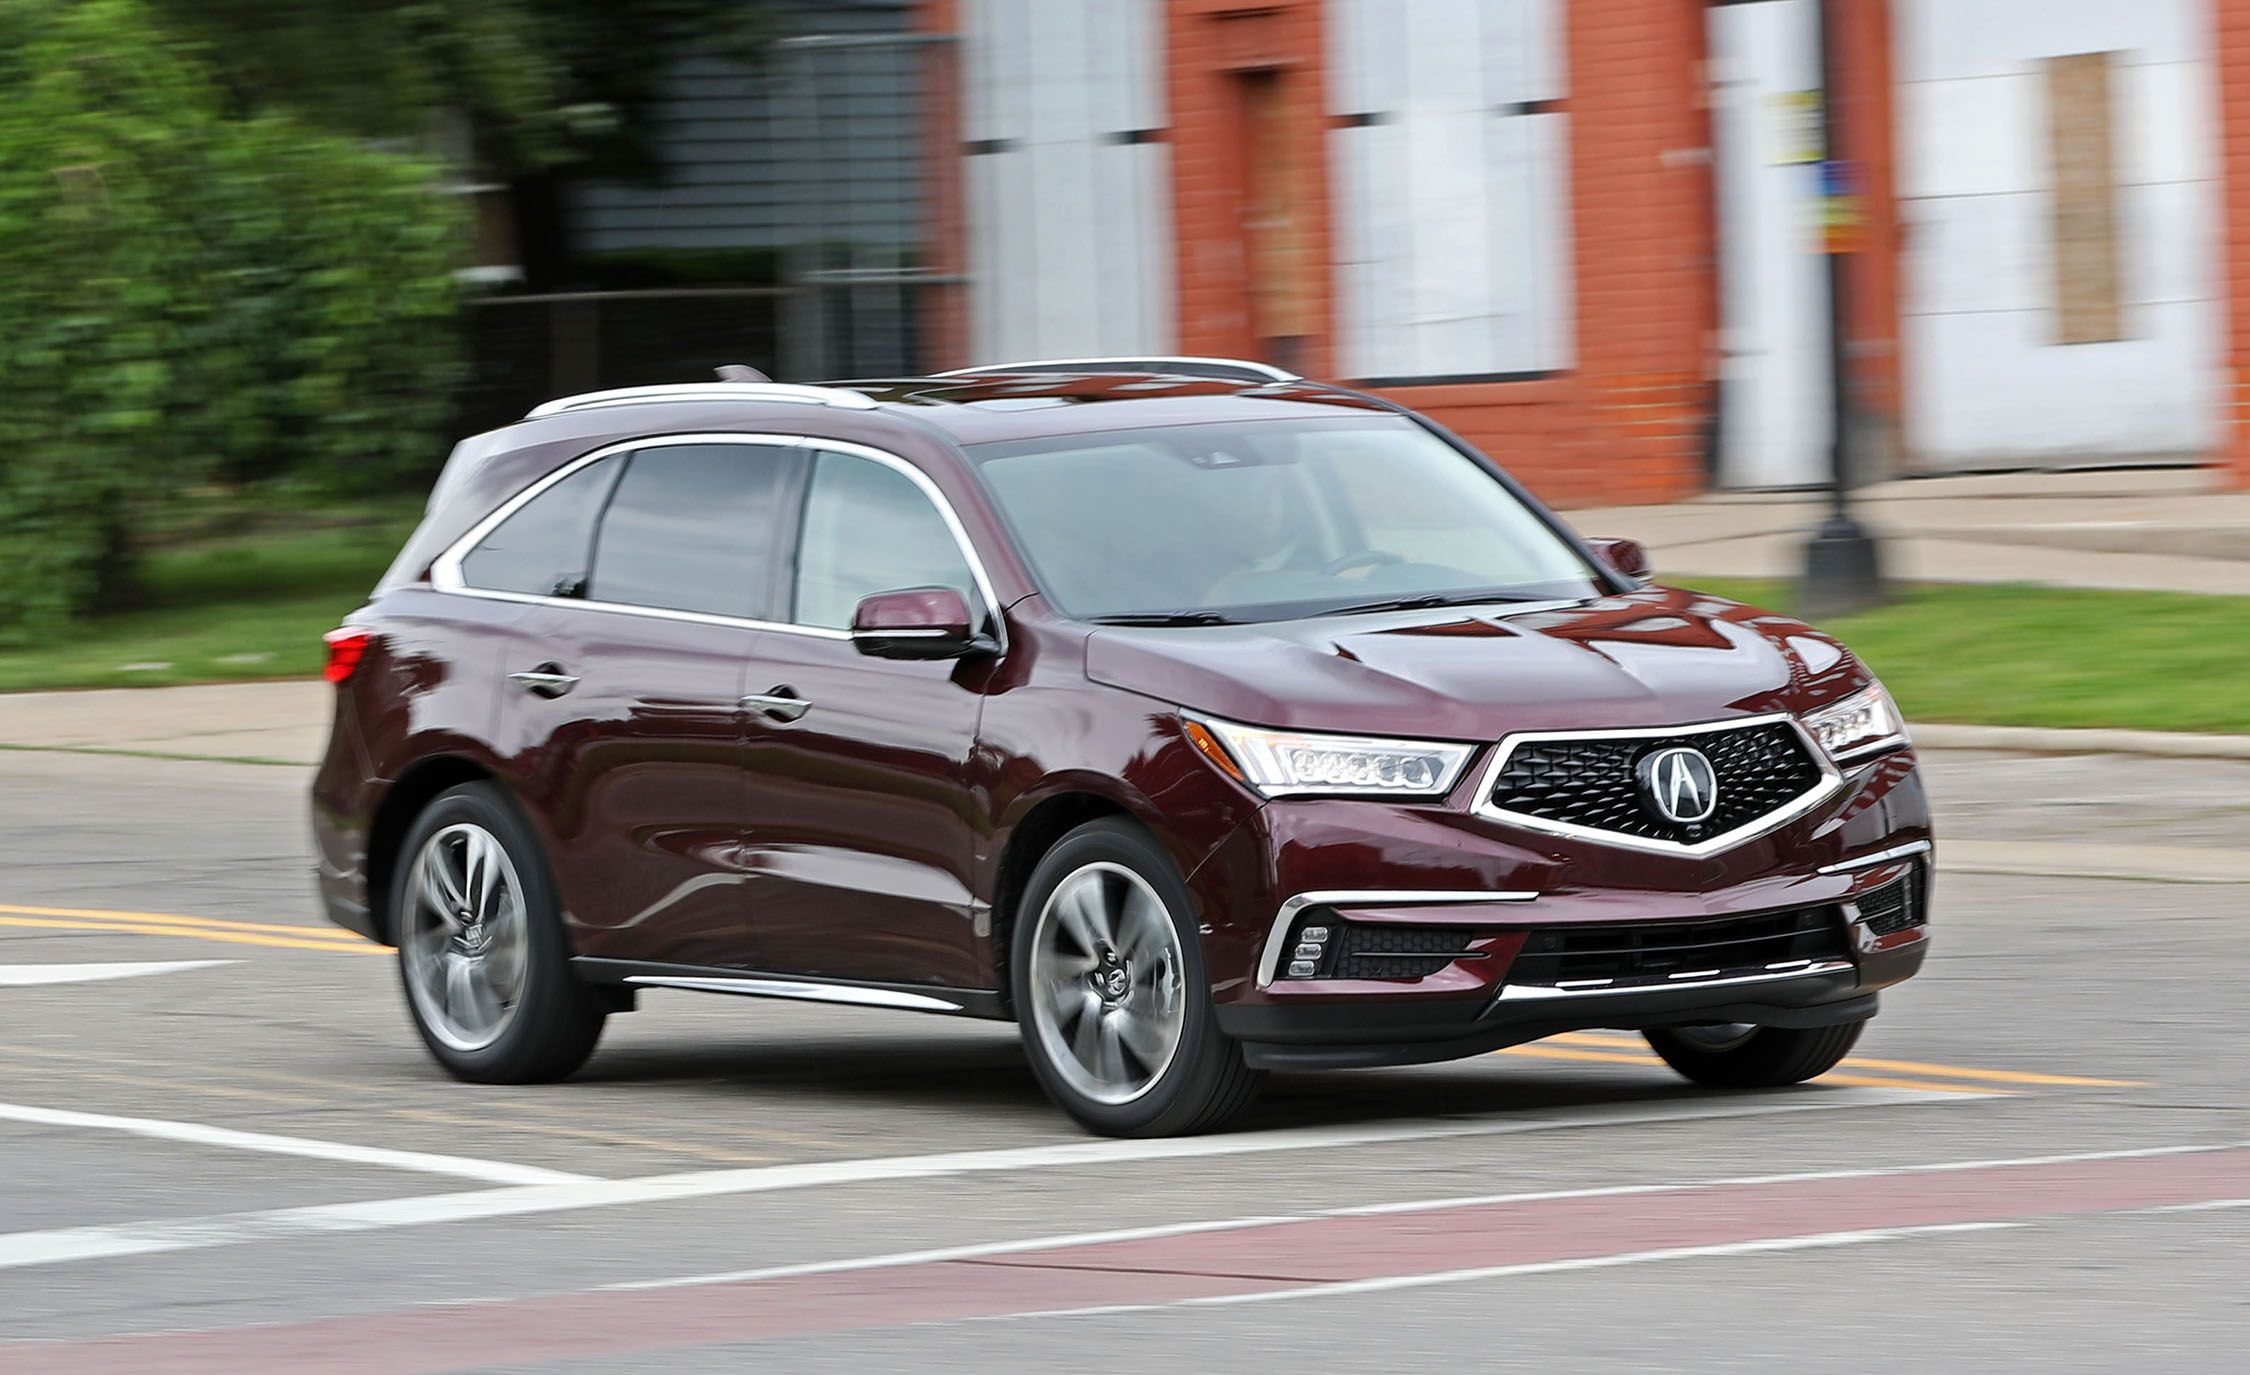 Acura MDX Reviews Acura MDX Price s and Specs